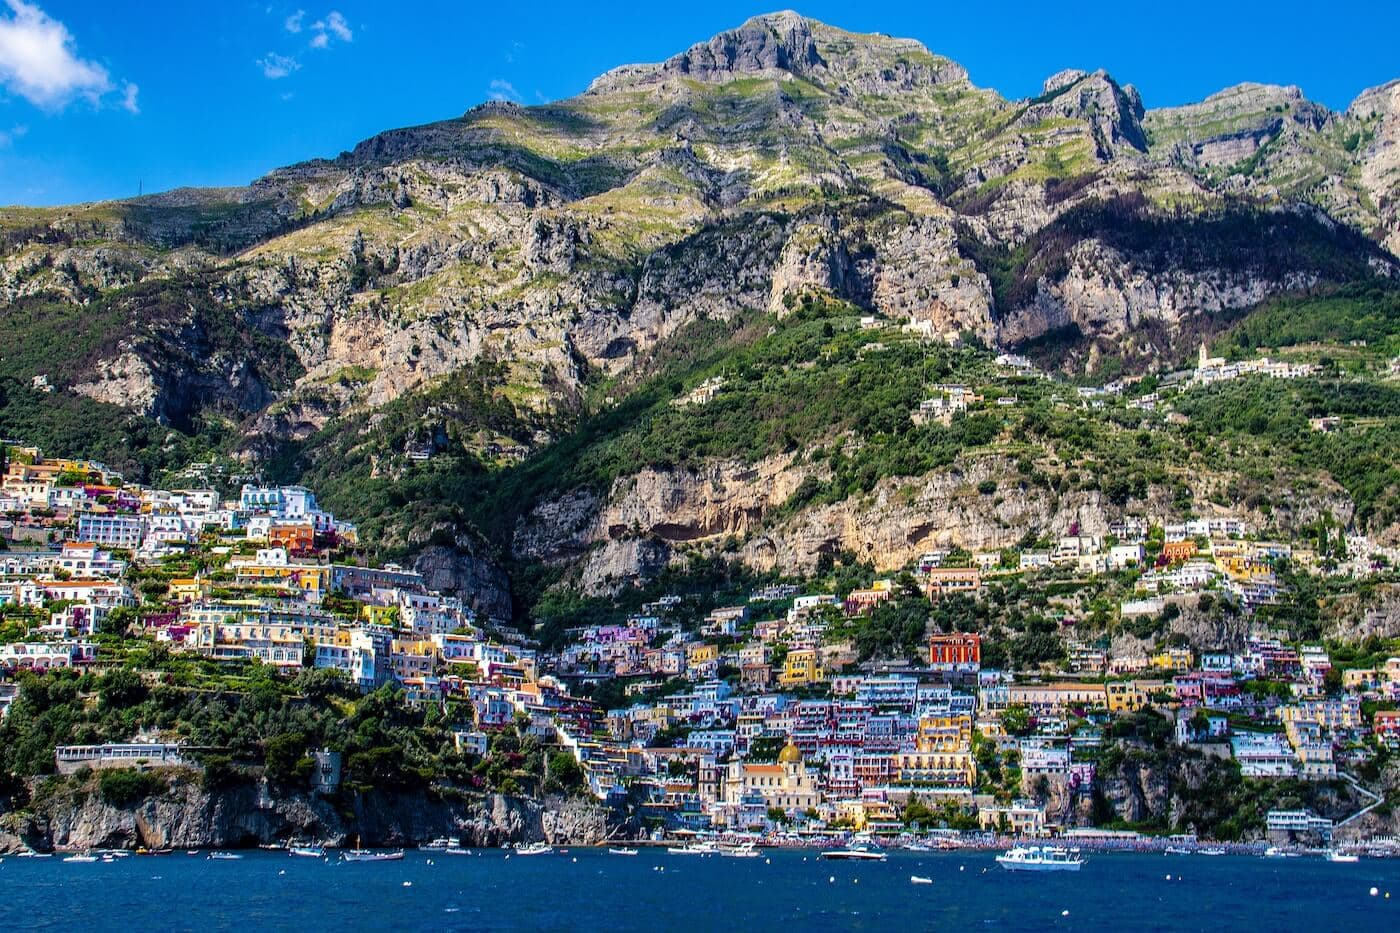 positano hikin retreats wellness retreats in italy europe amalfi coast healthy fitness boot camp weight loss